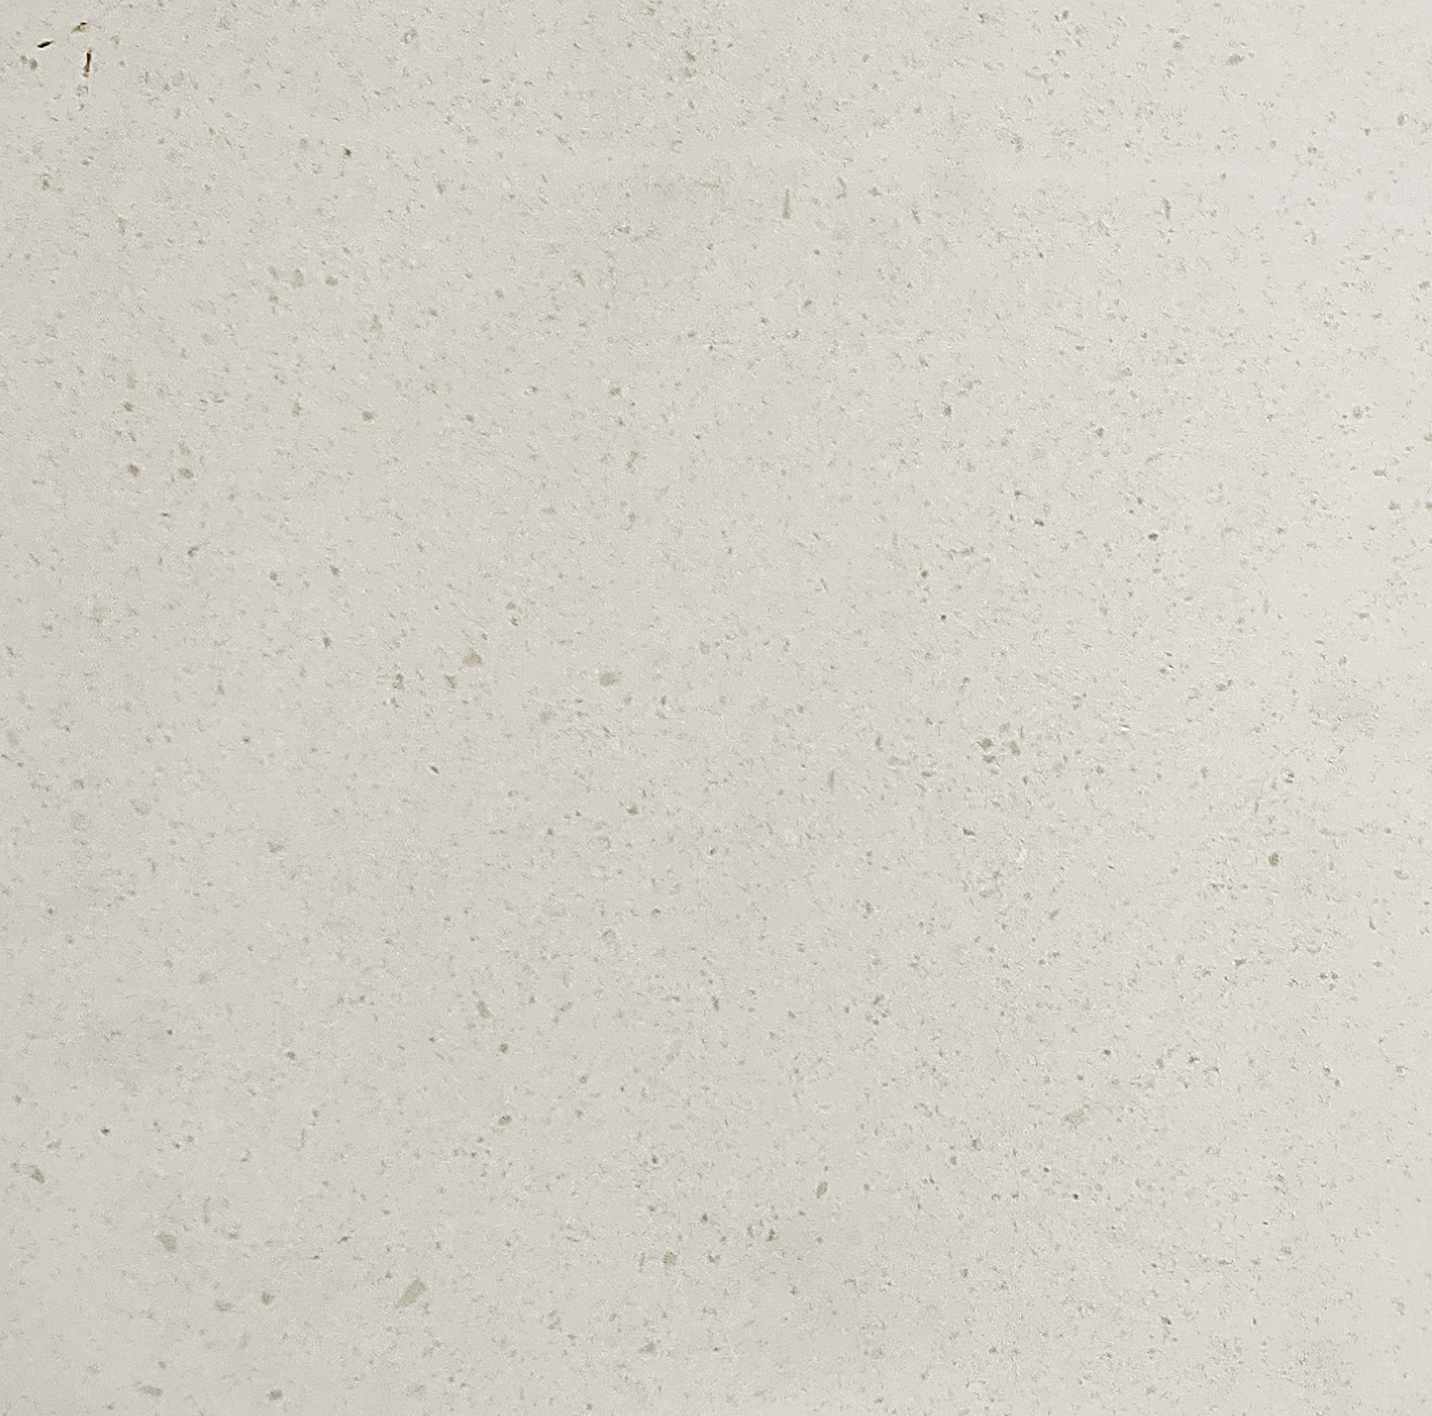 Caliza Capri Honed Limestone sample